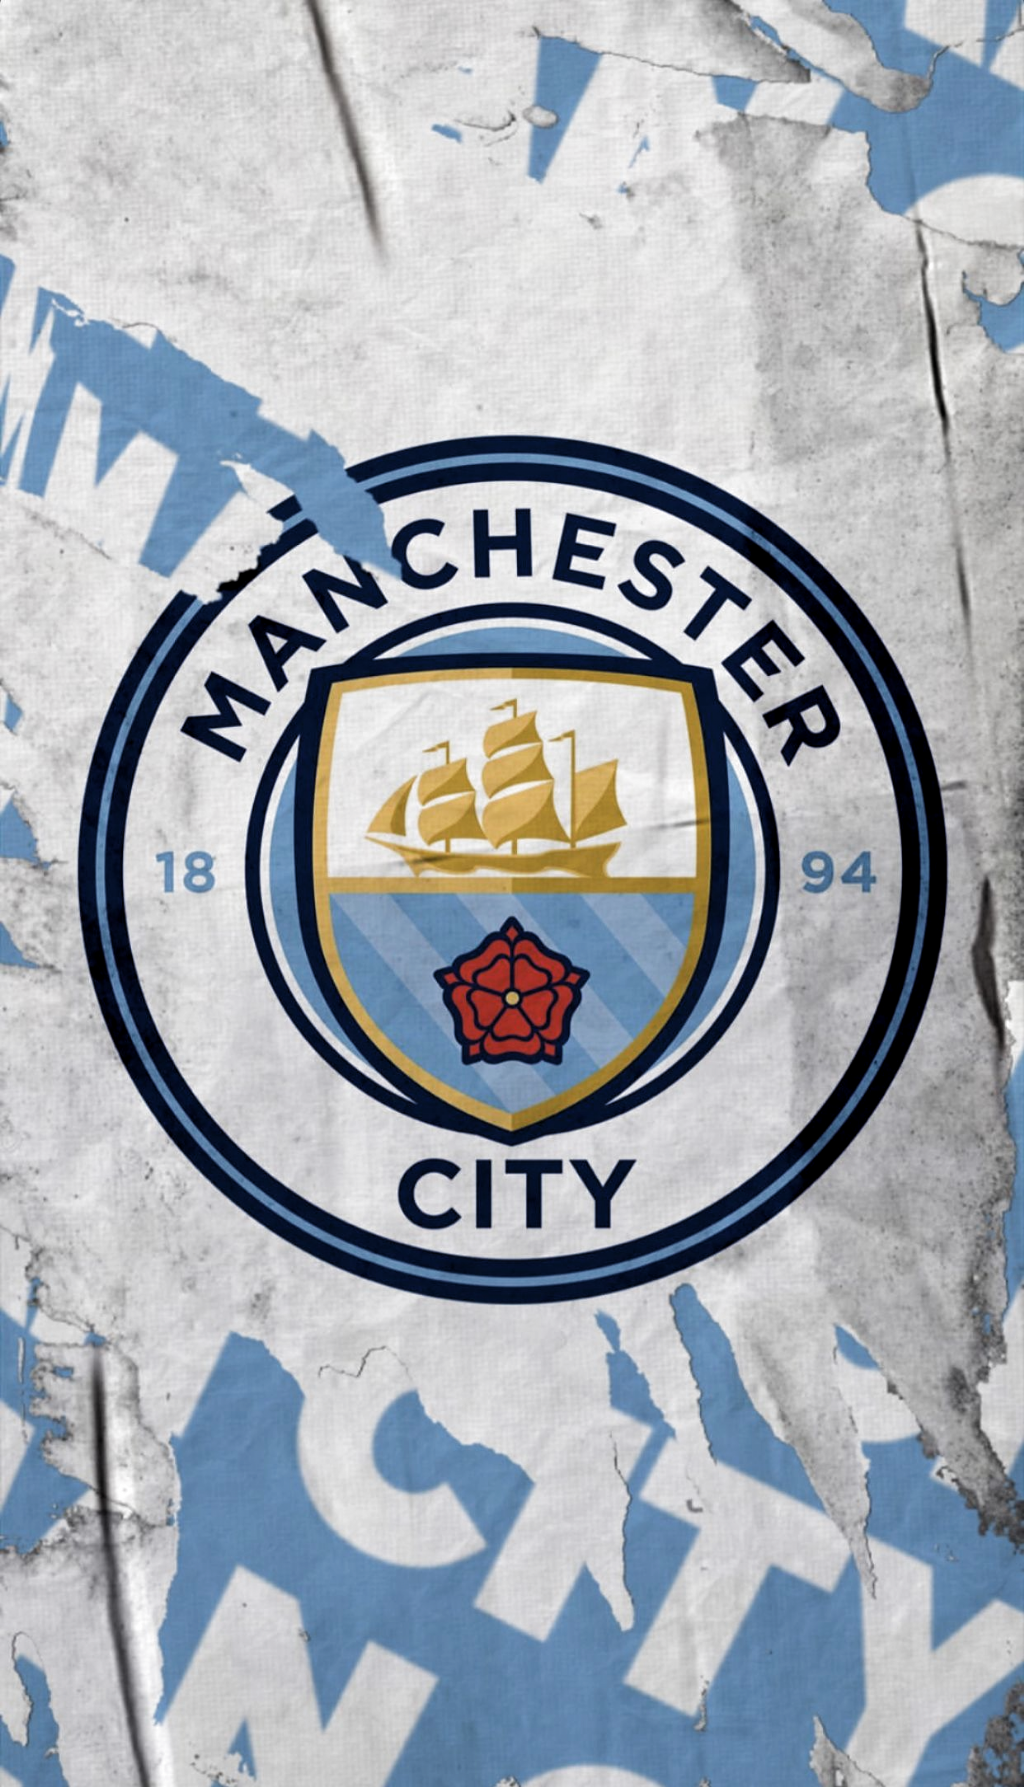 Mcfc Mancity Wallpaper Screensaver In 2020 Manchester City Wallpaper City Wallpaper Manchester City